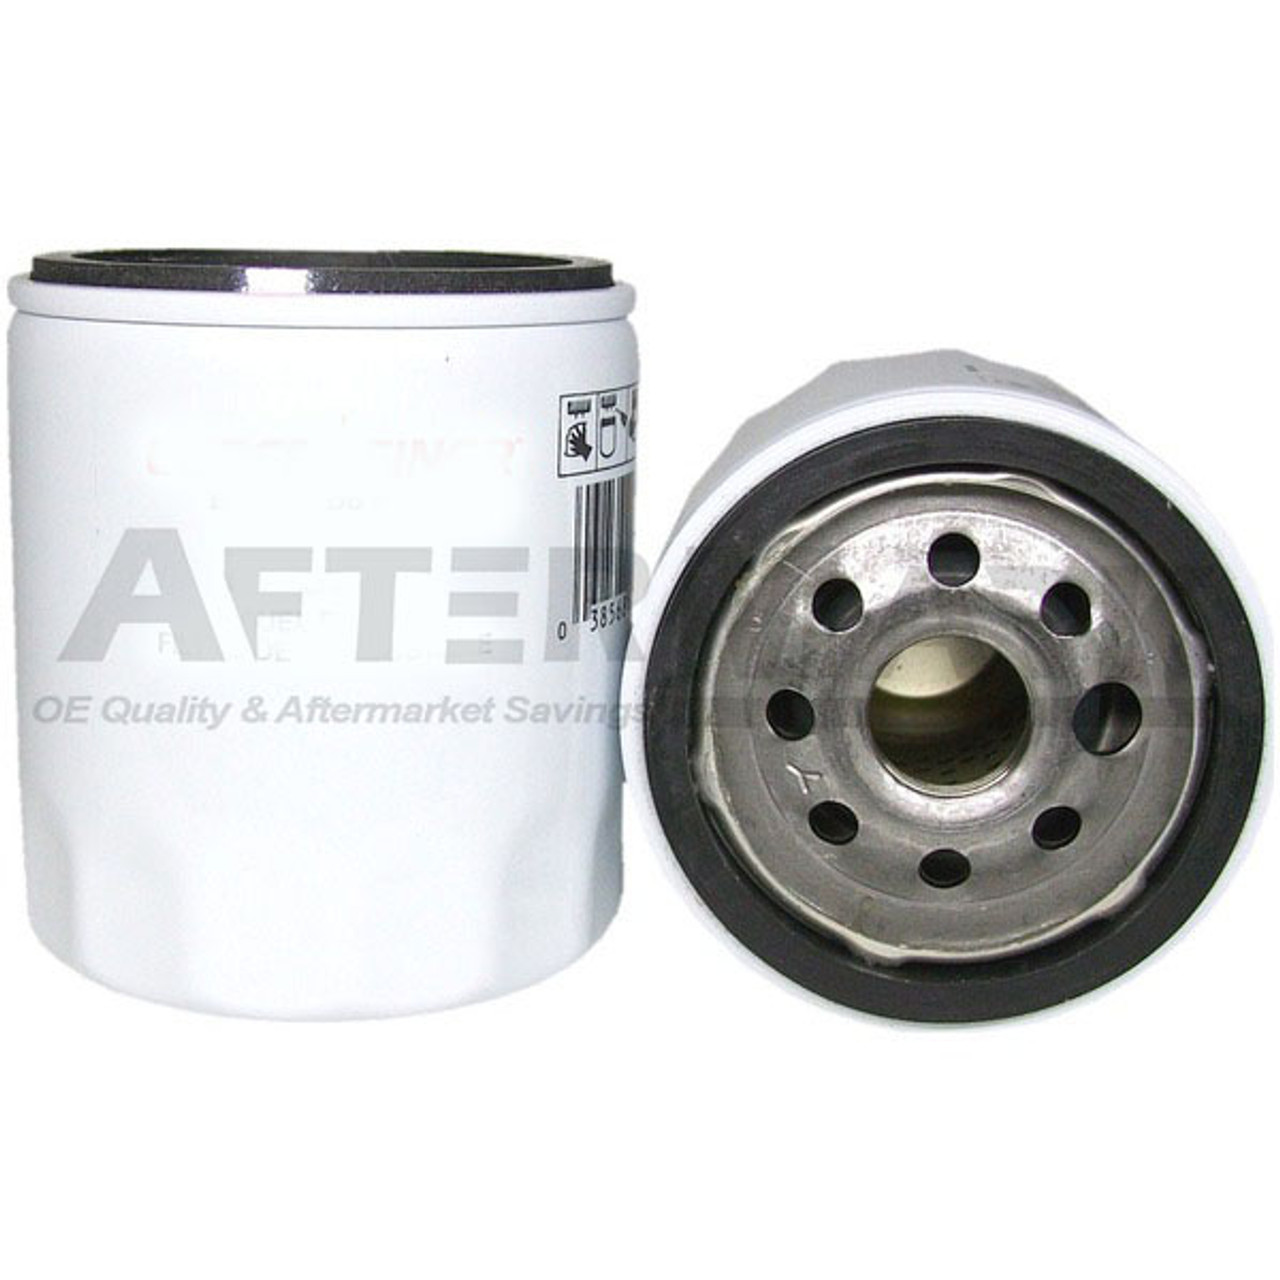 A-30-814-11K-OE Fuel Filter for Carrier Transicold